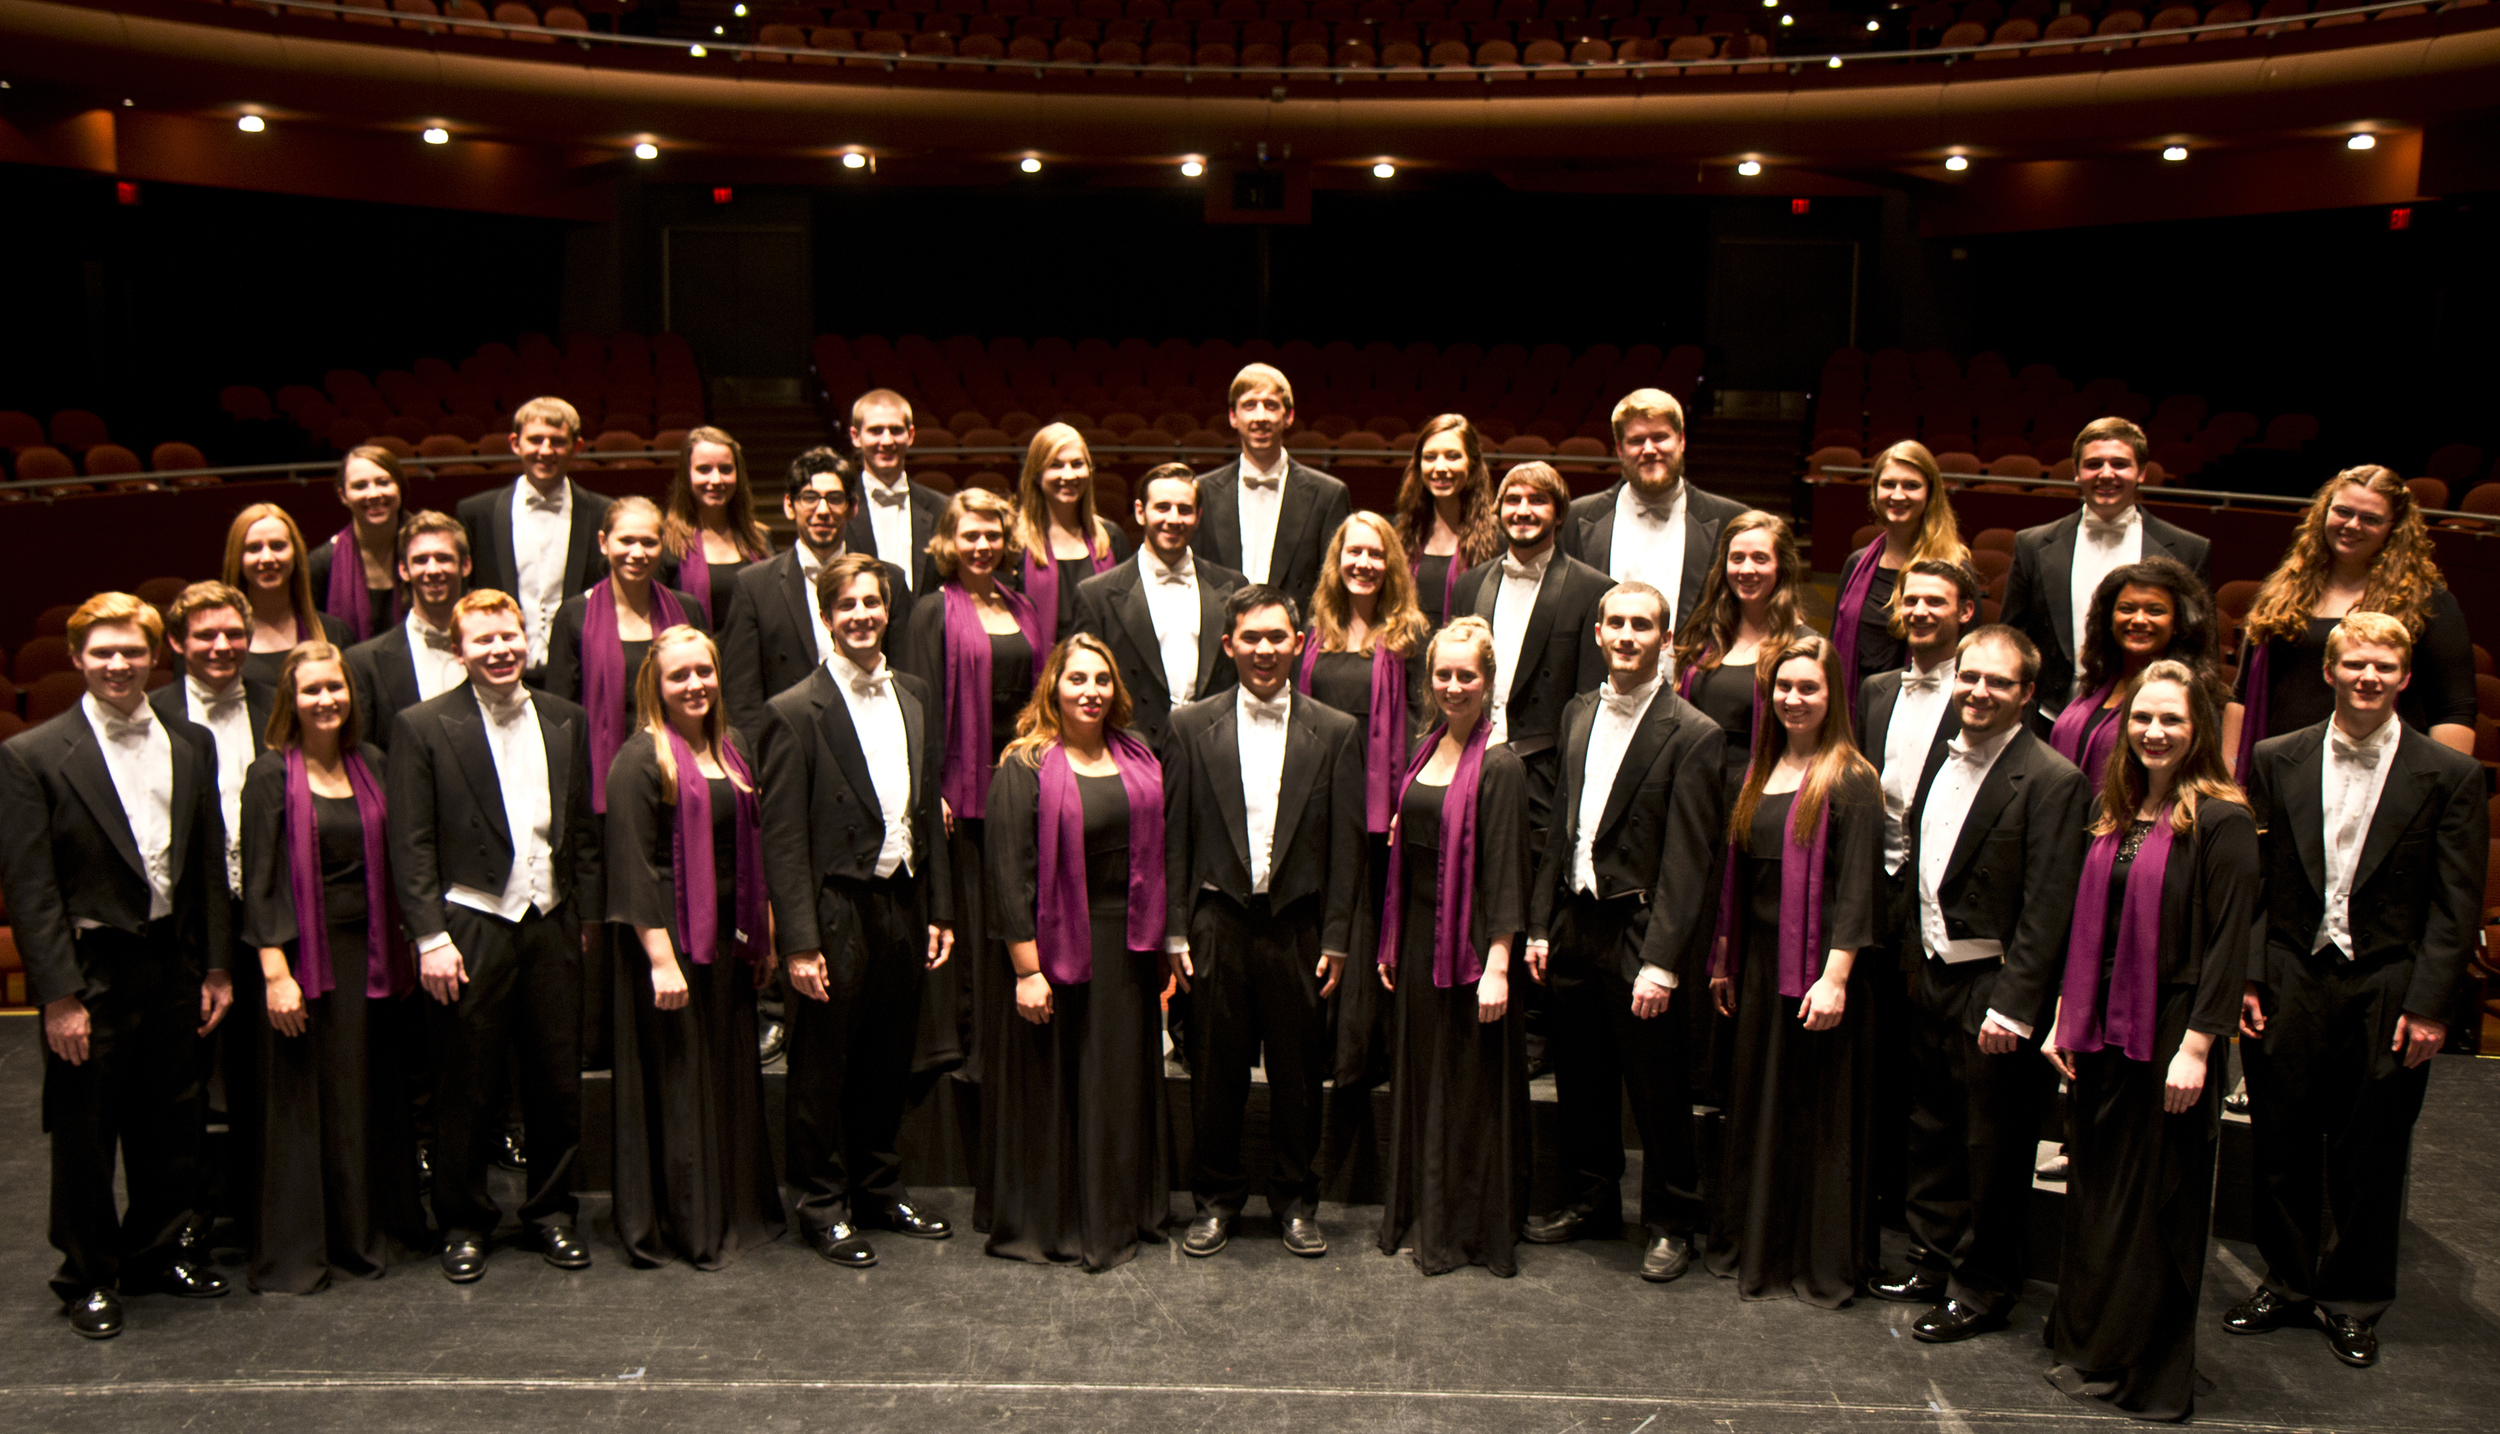 Chorale - University of Norther IOWA